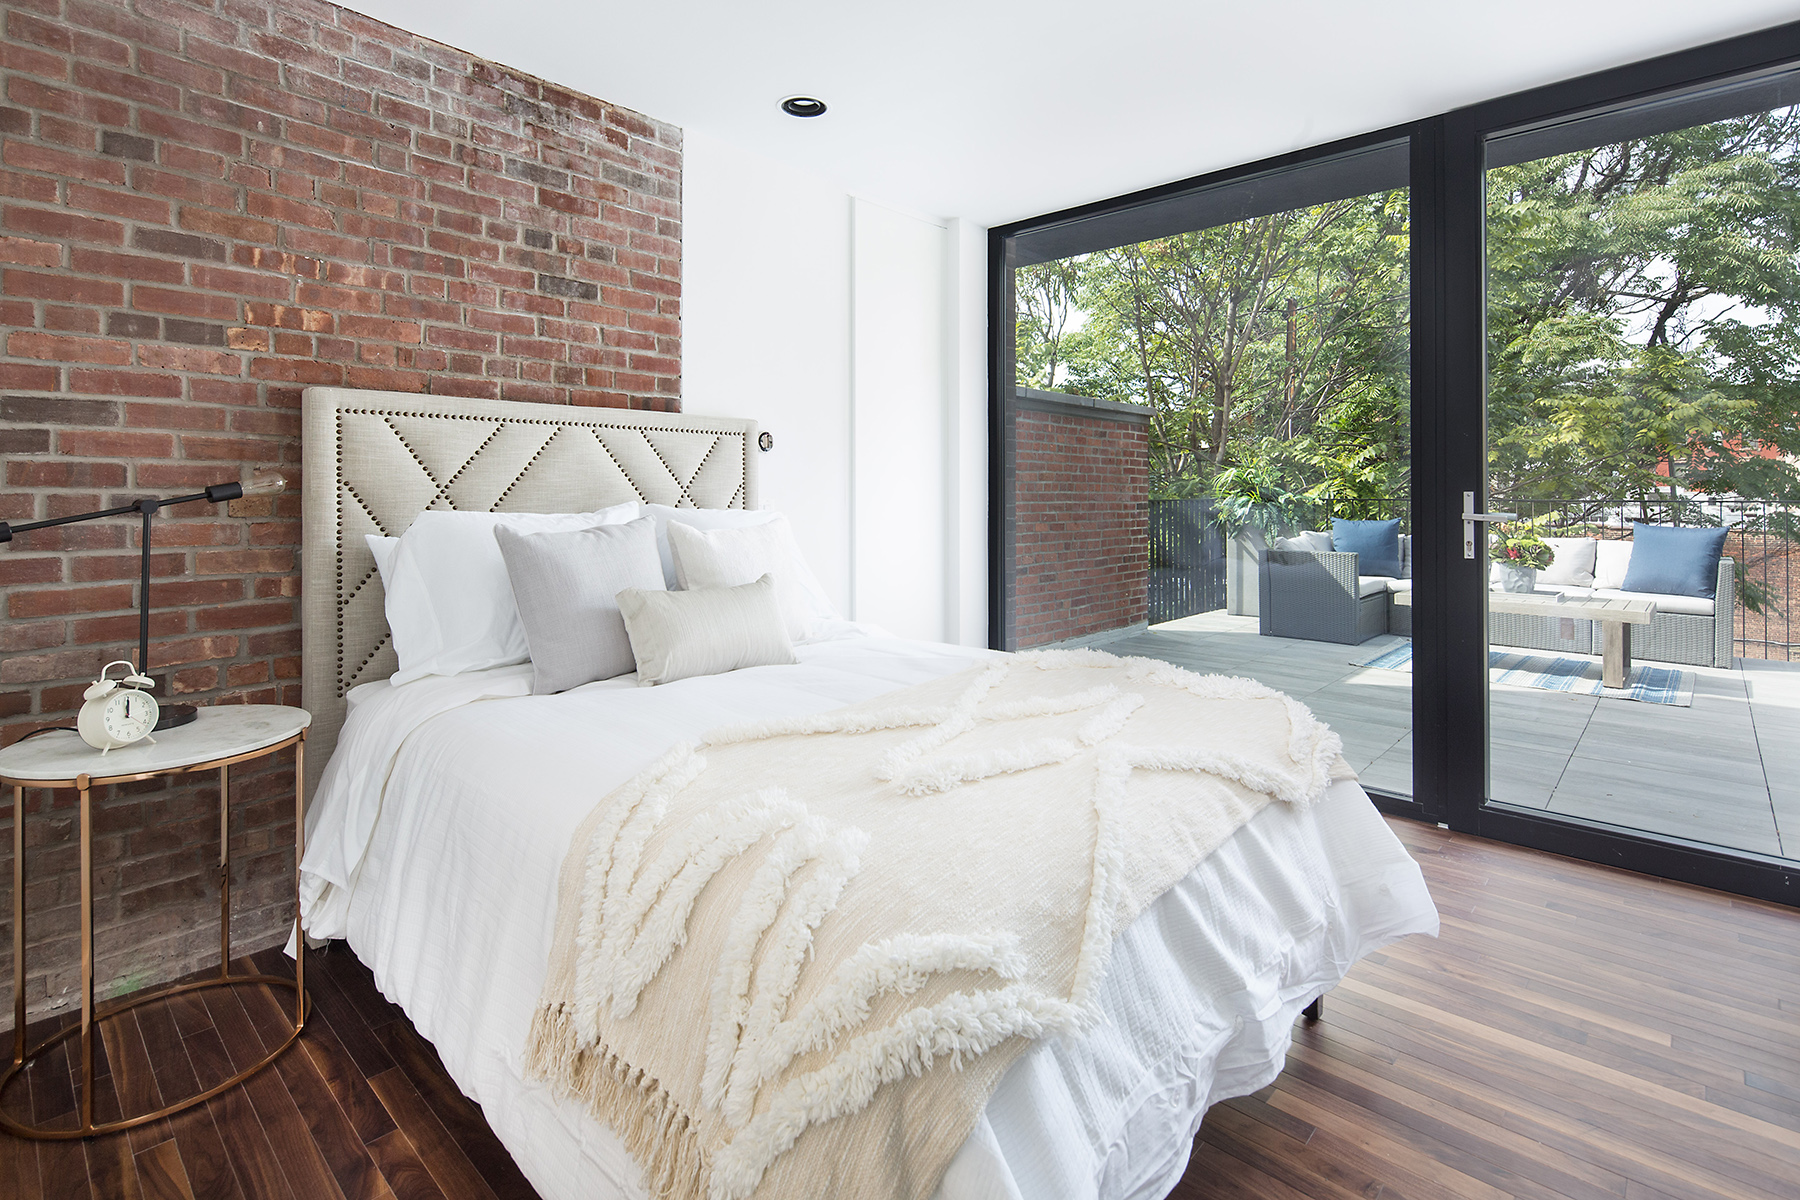 Bedroom with white sheets and a brick wall leading to a private balcony in a Brooklyn home. MEP designed by 2L Engineering.